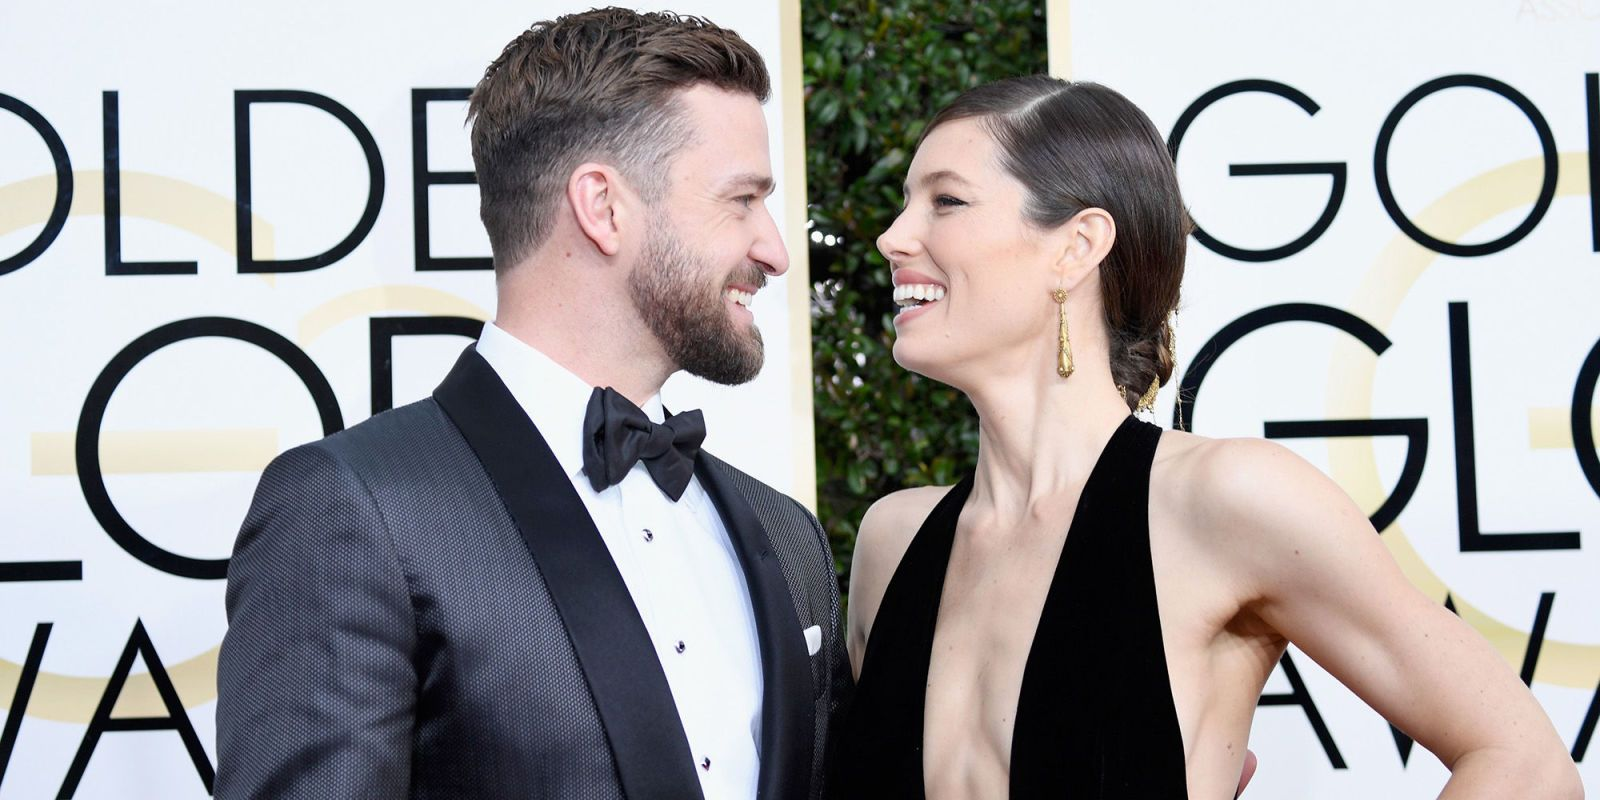 Who was justin timberlake dating in 2019